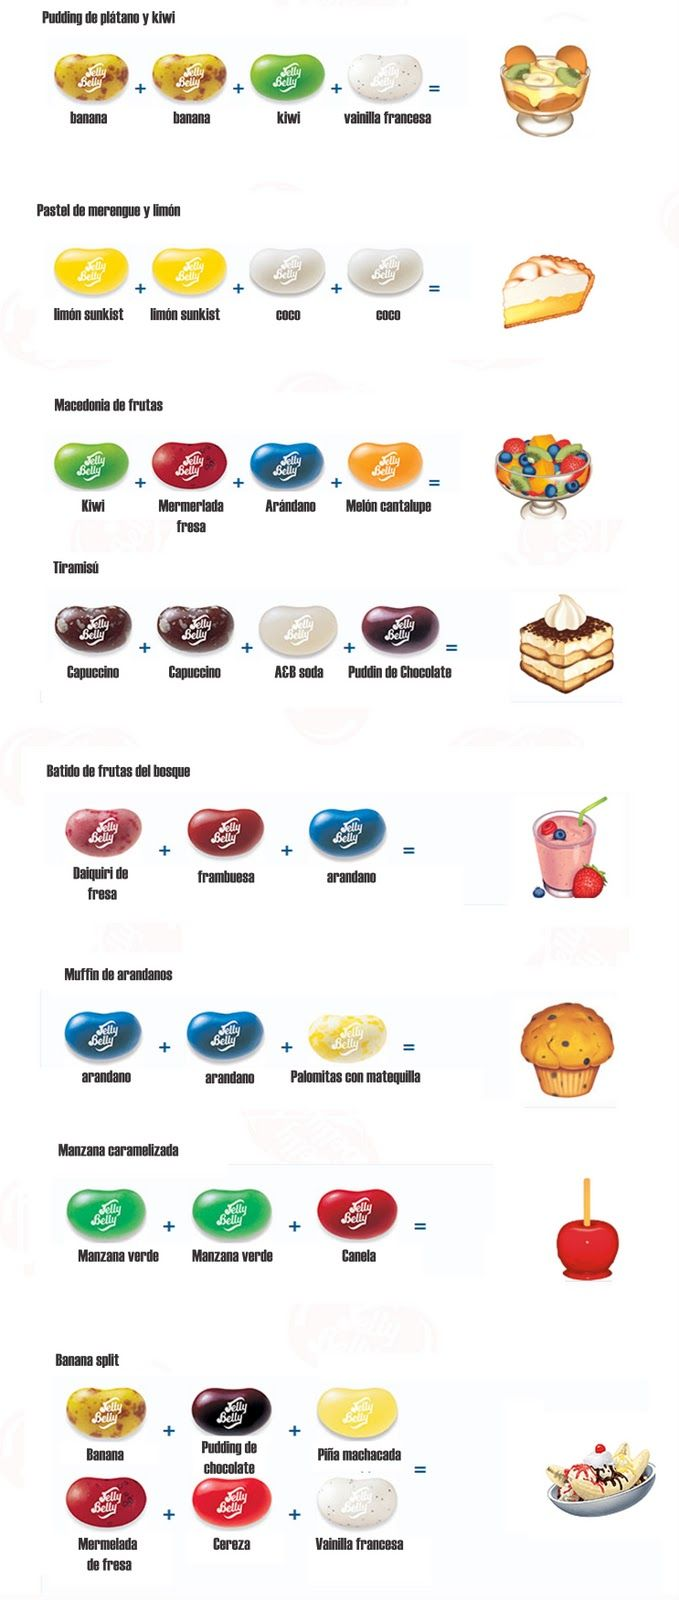 Jelly Belly Recipes Recipes Jelly Belly Beans Recipes Jelly Belly